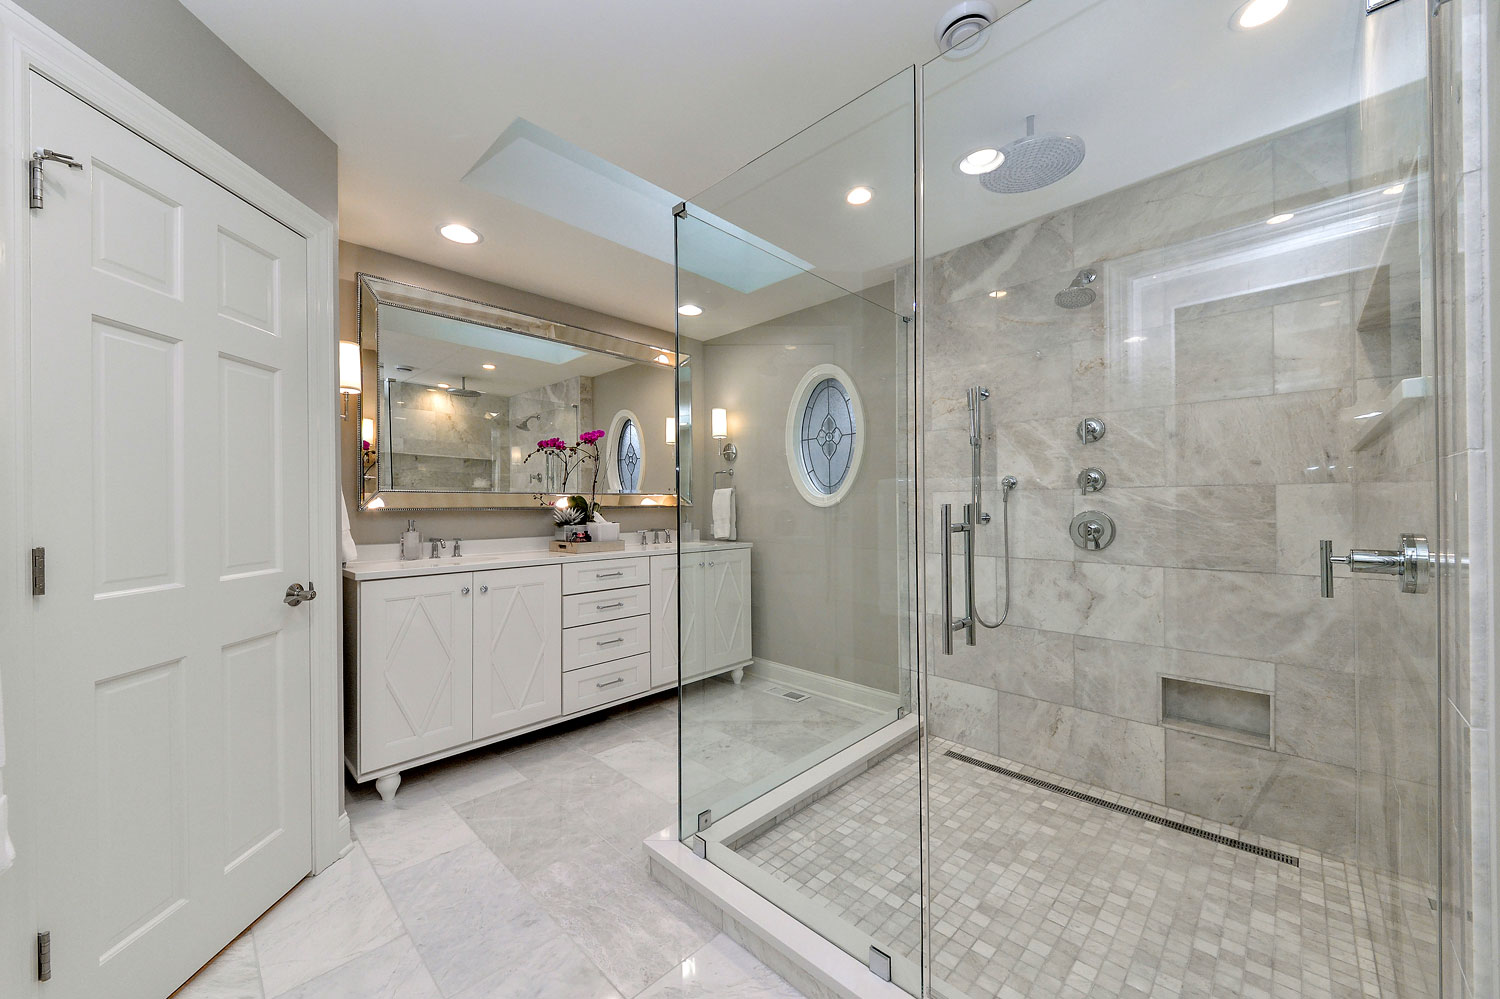 Bobby lisa 39 s master bathroom remodel pictures home for Remodeling ideas